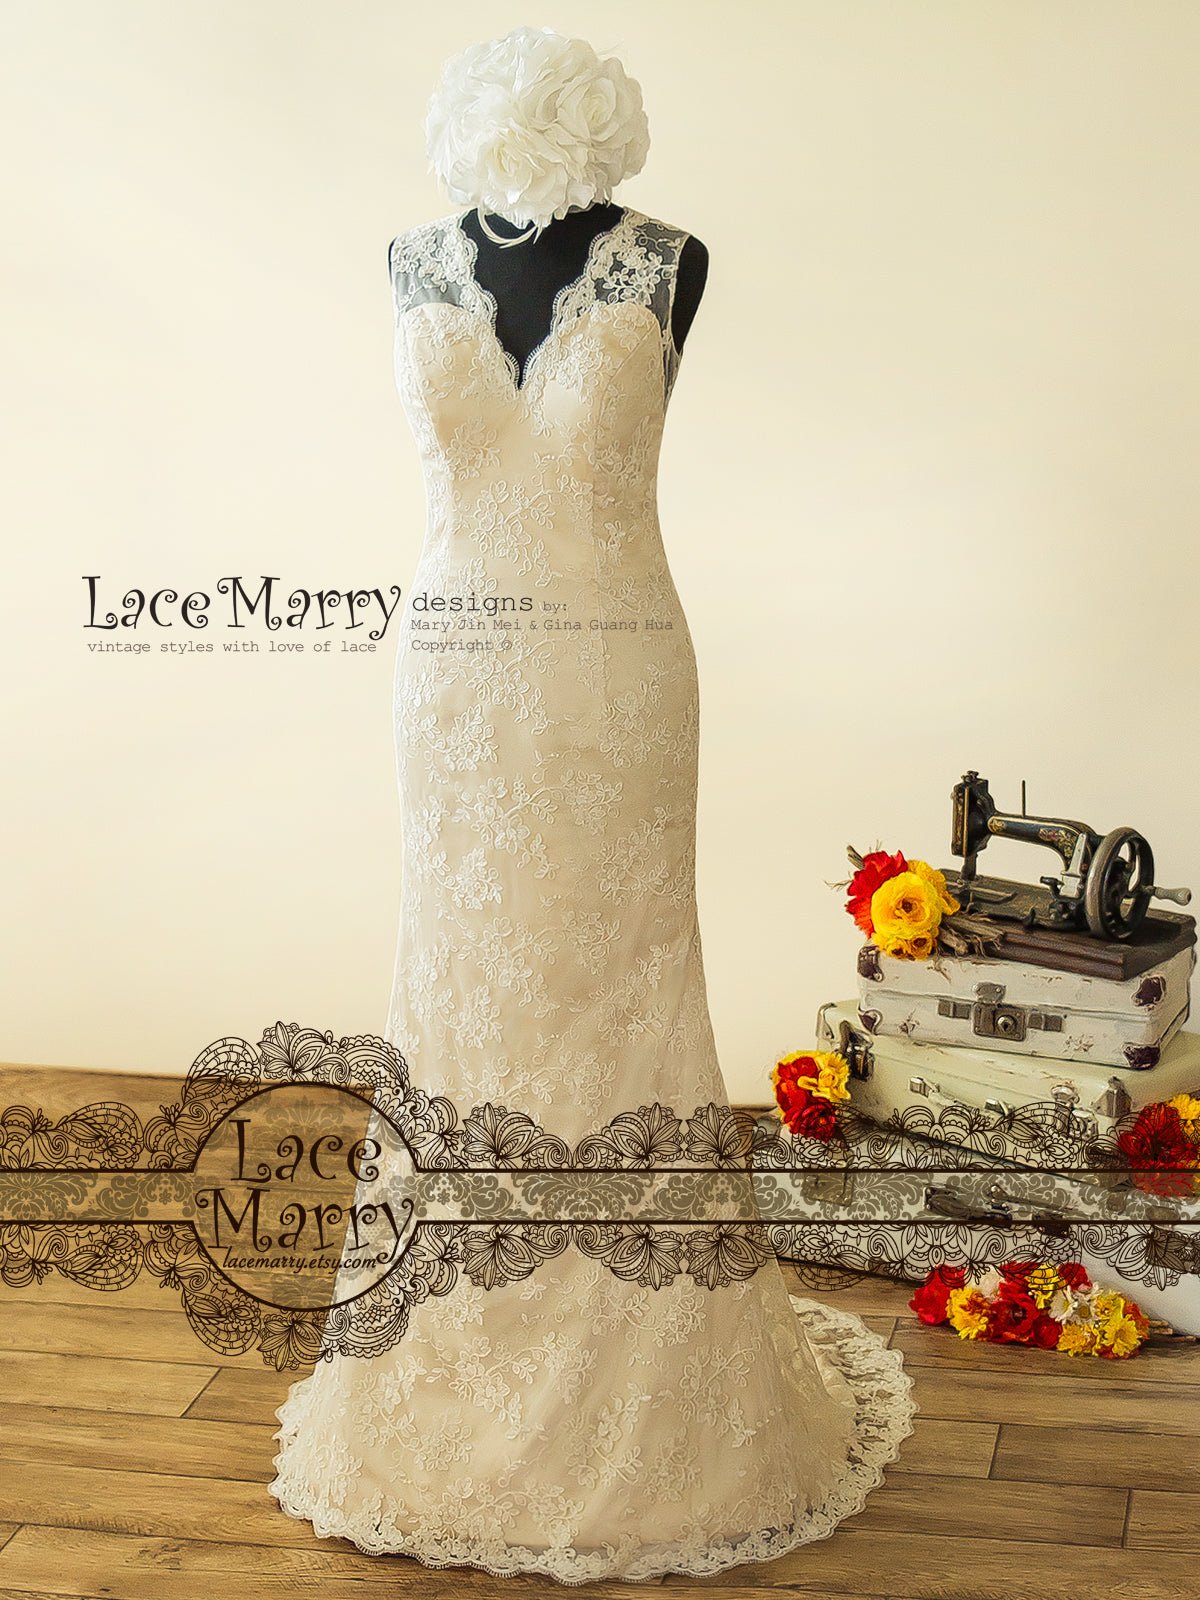 Sheath Lace Wedding Dress Featuring Sheer Lace Covered Back With